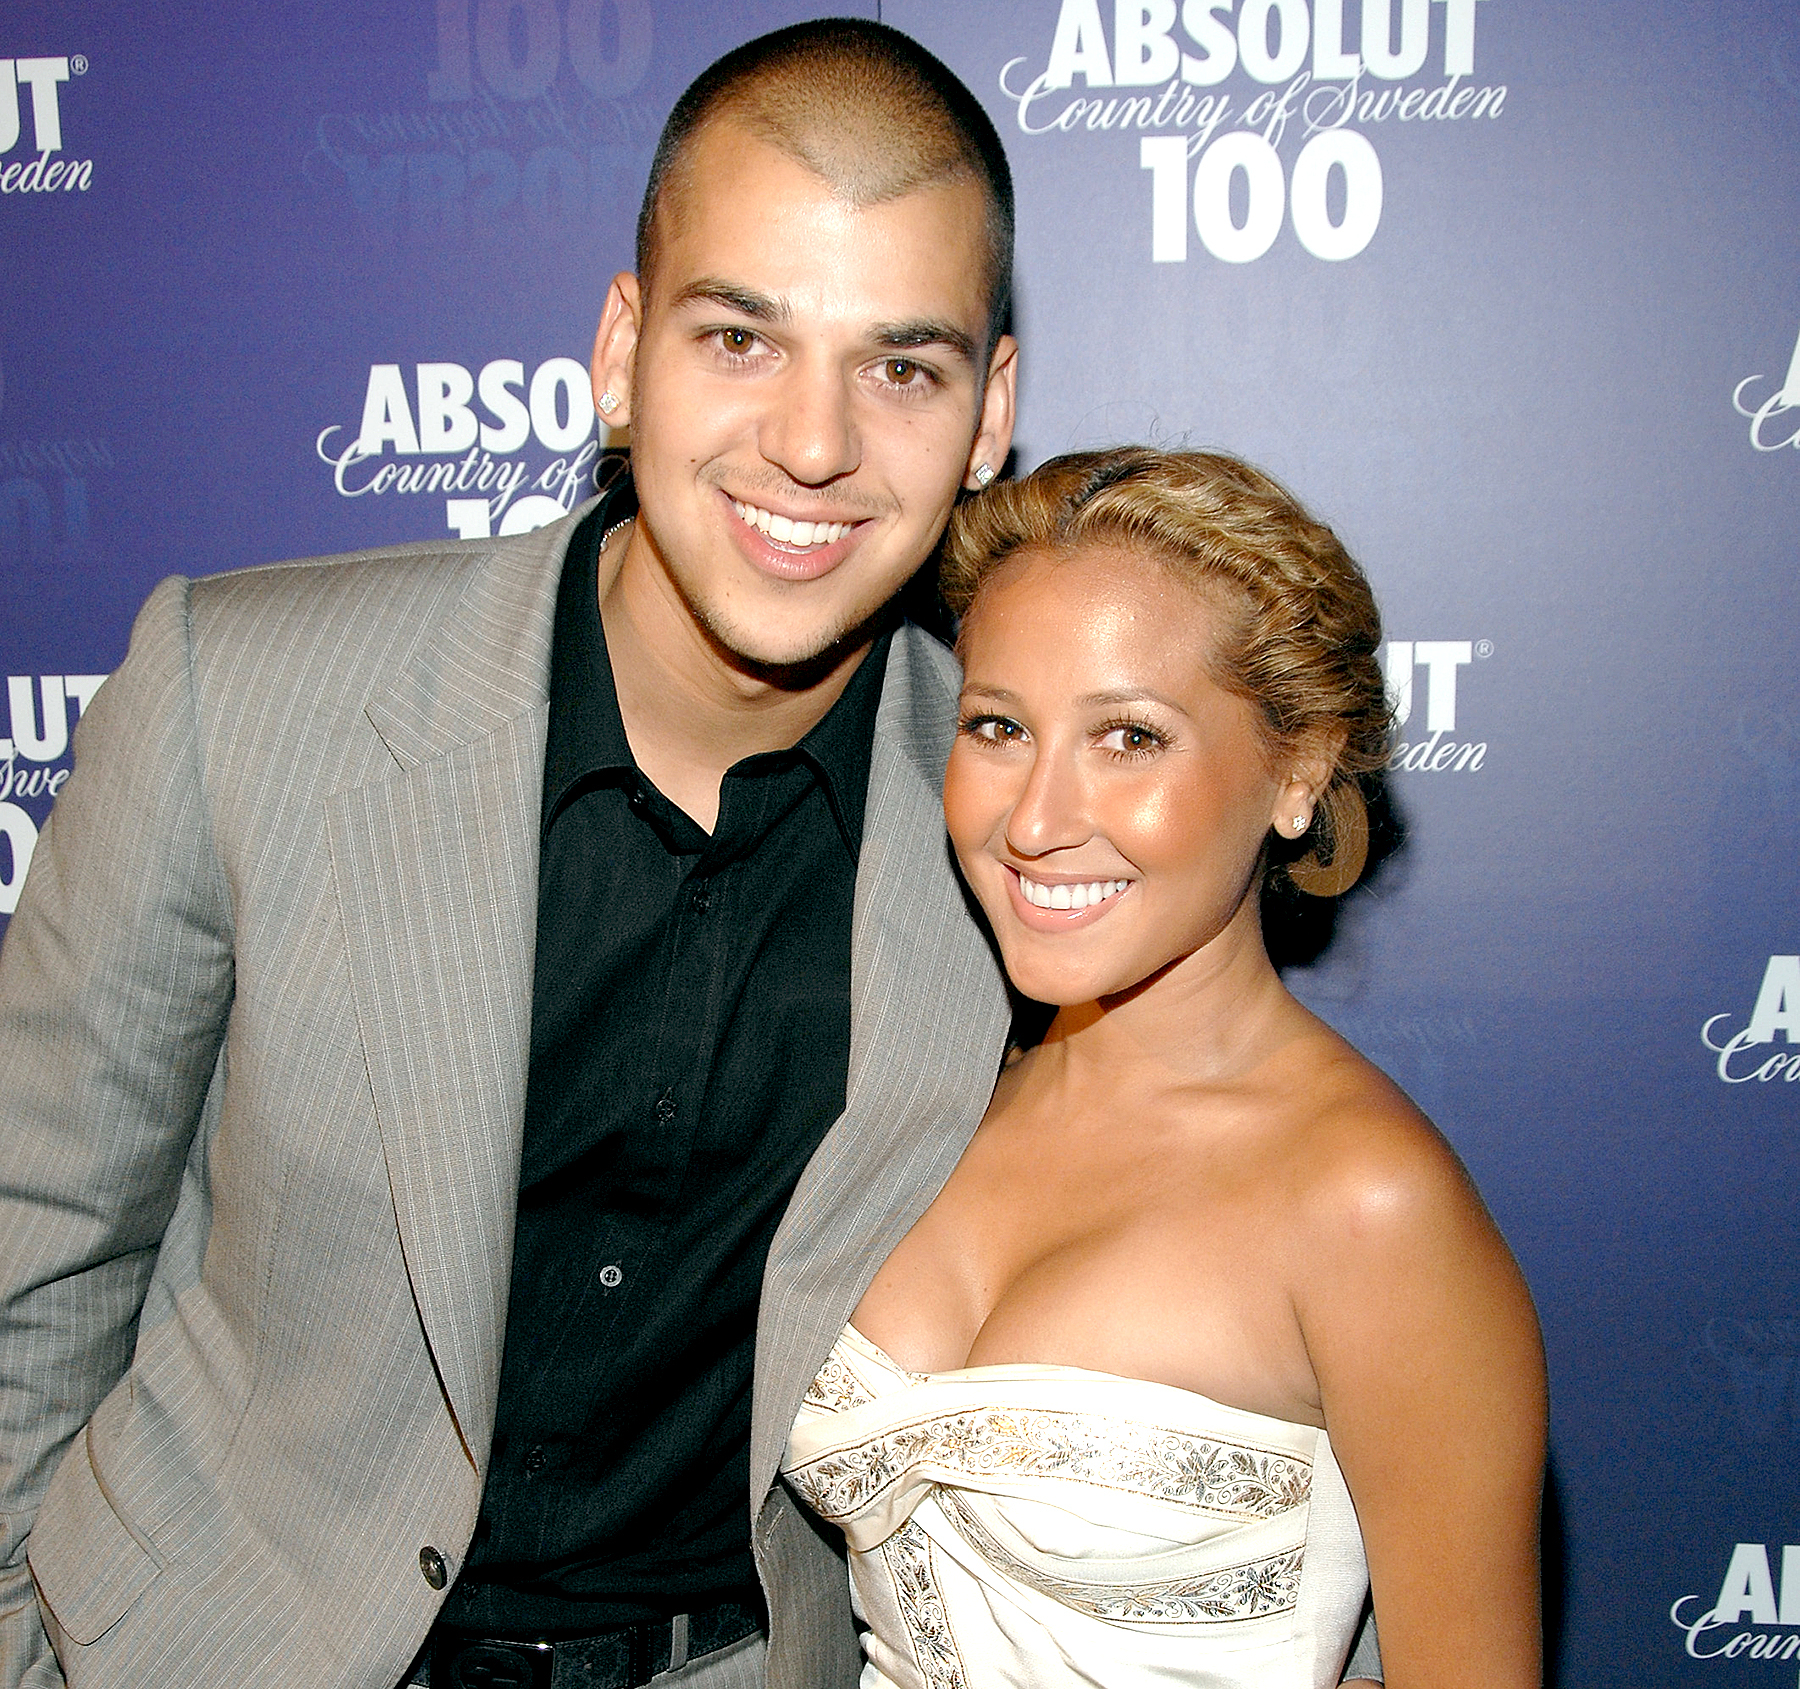 Rob Kardashian and Adrienne Bailon of the Cheetah Girls arrive at the